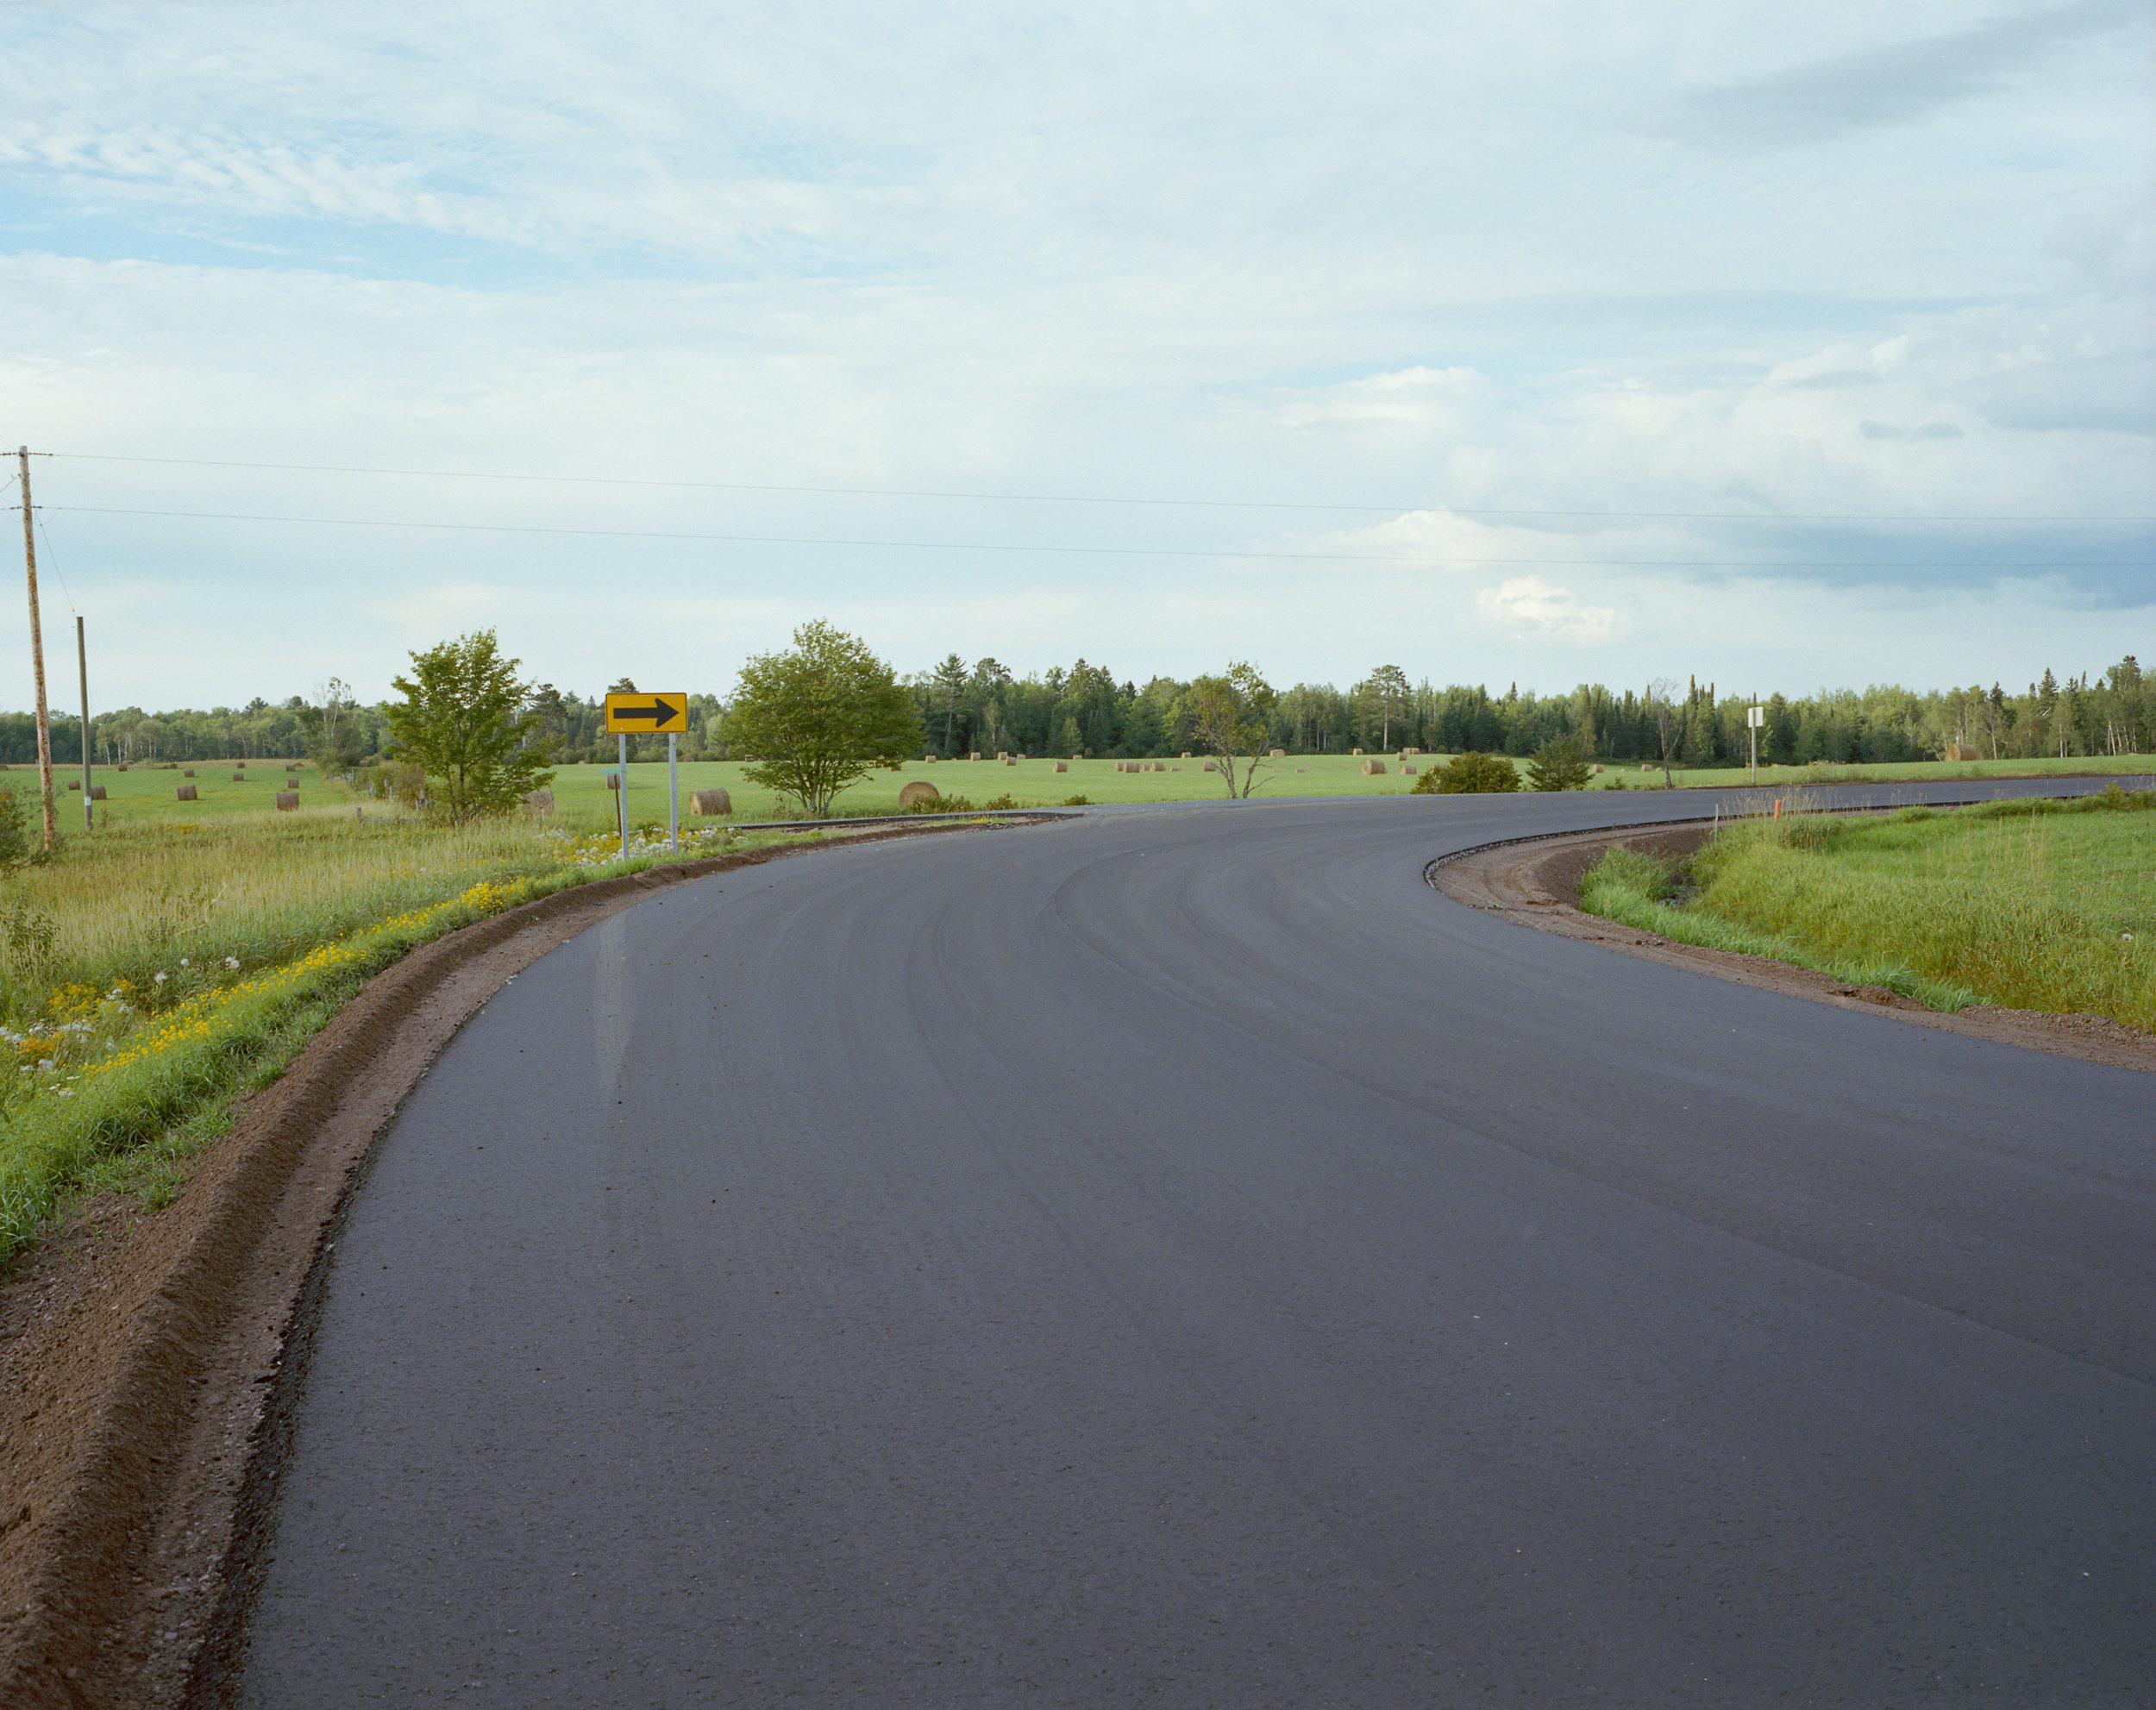 Steve's corner on Kern Lake Road, freshly paved for the first time